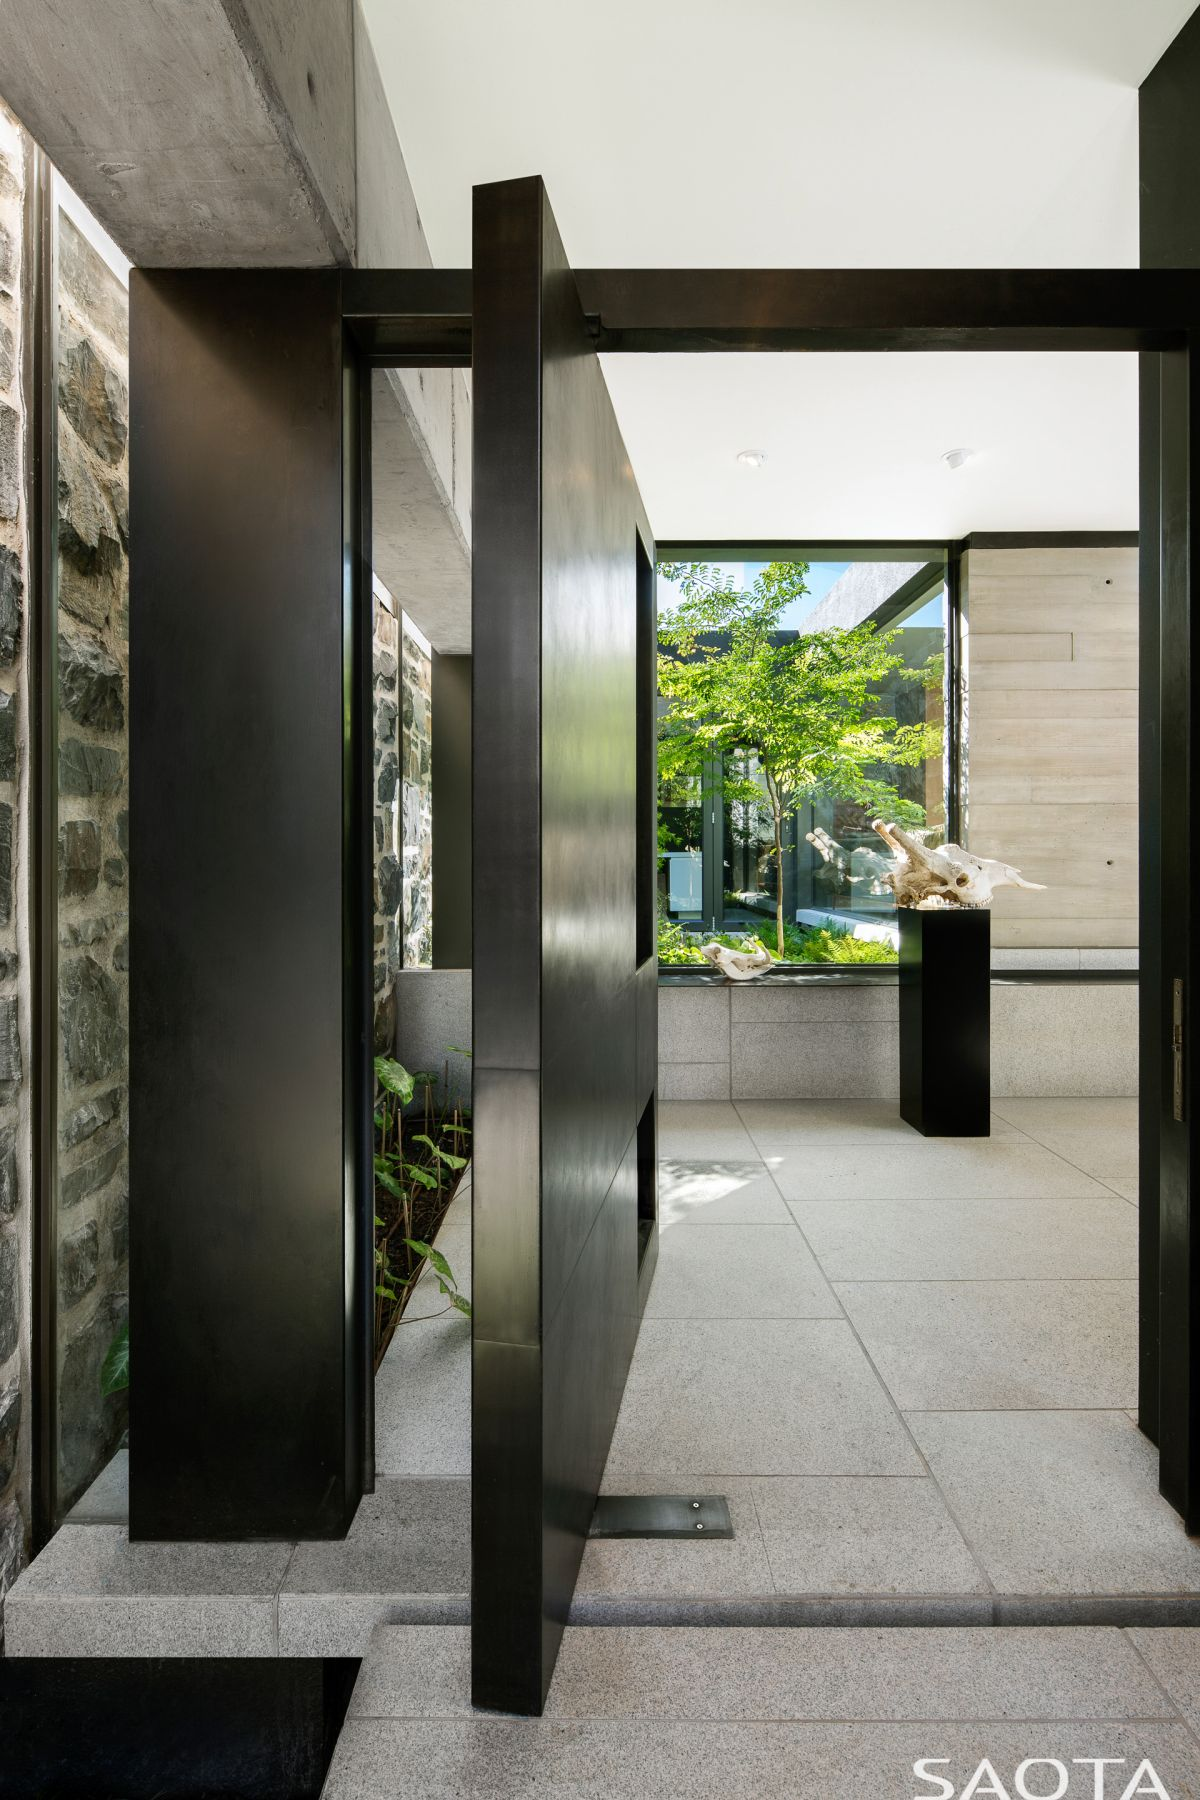 The front door is large and made of metal and it has a pivoting system